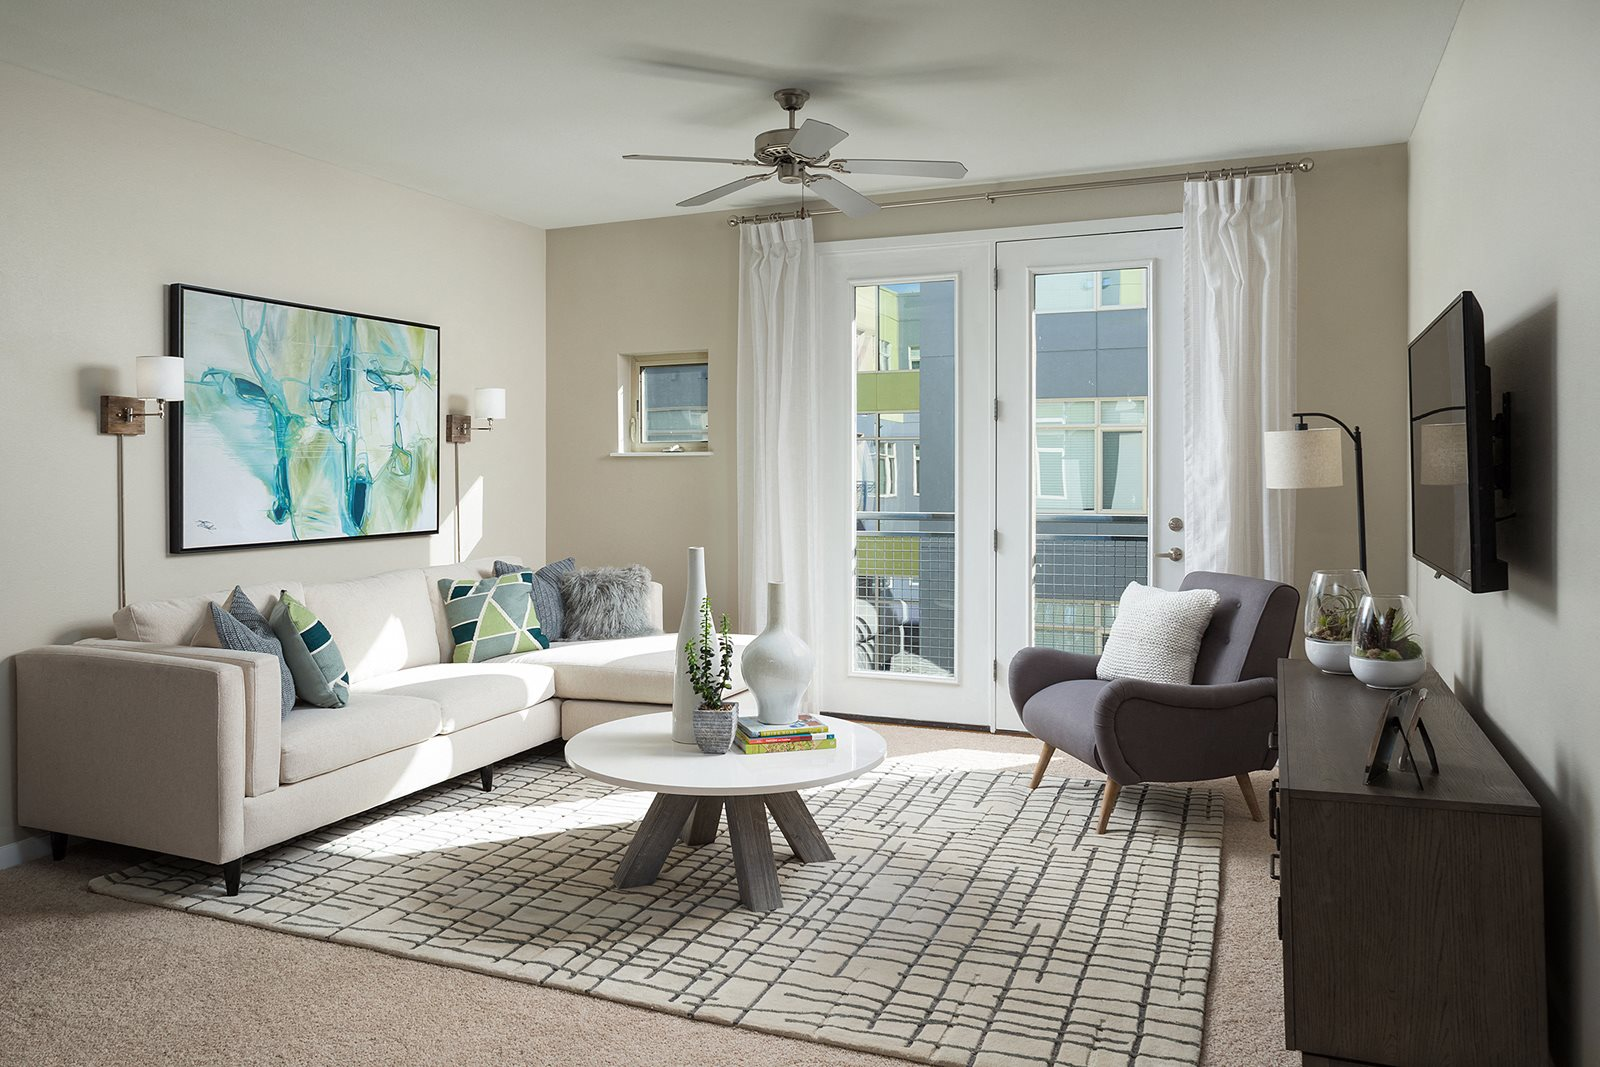 Bright living spaces with ceiling fans at The District, 80222